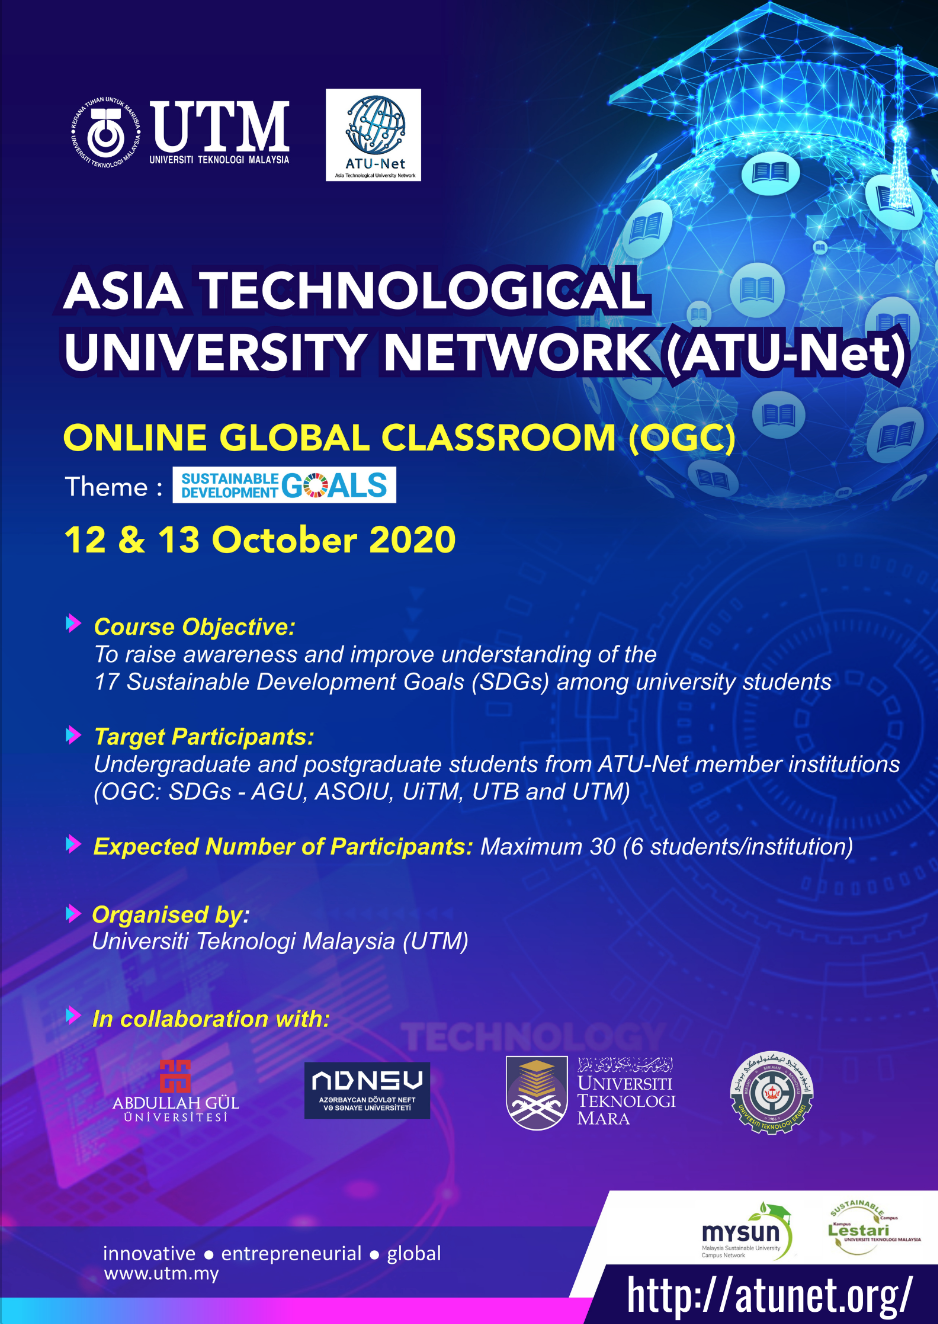 AGU co-organizes ATU-Net Association